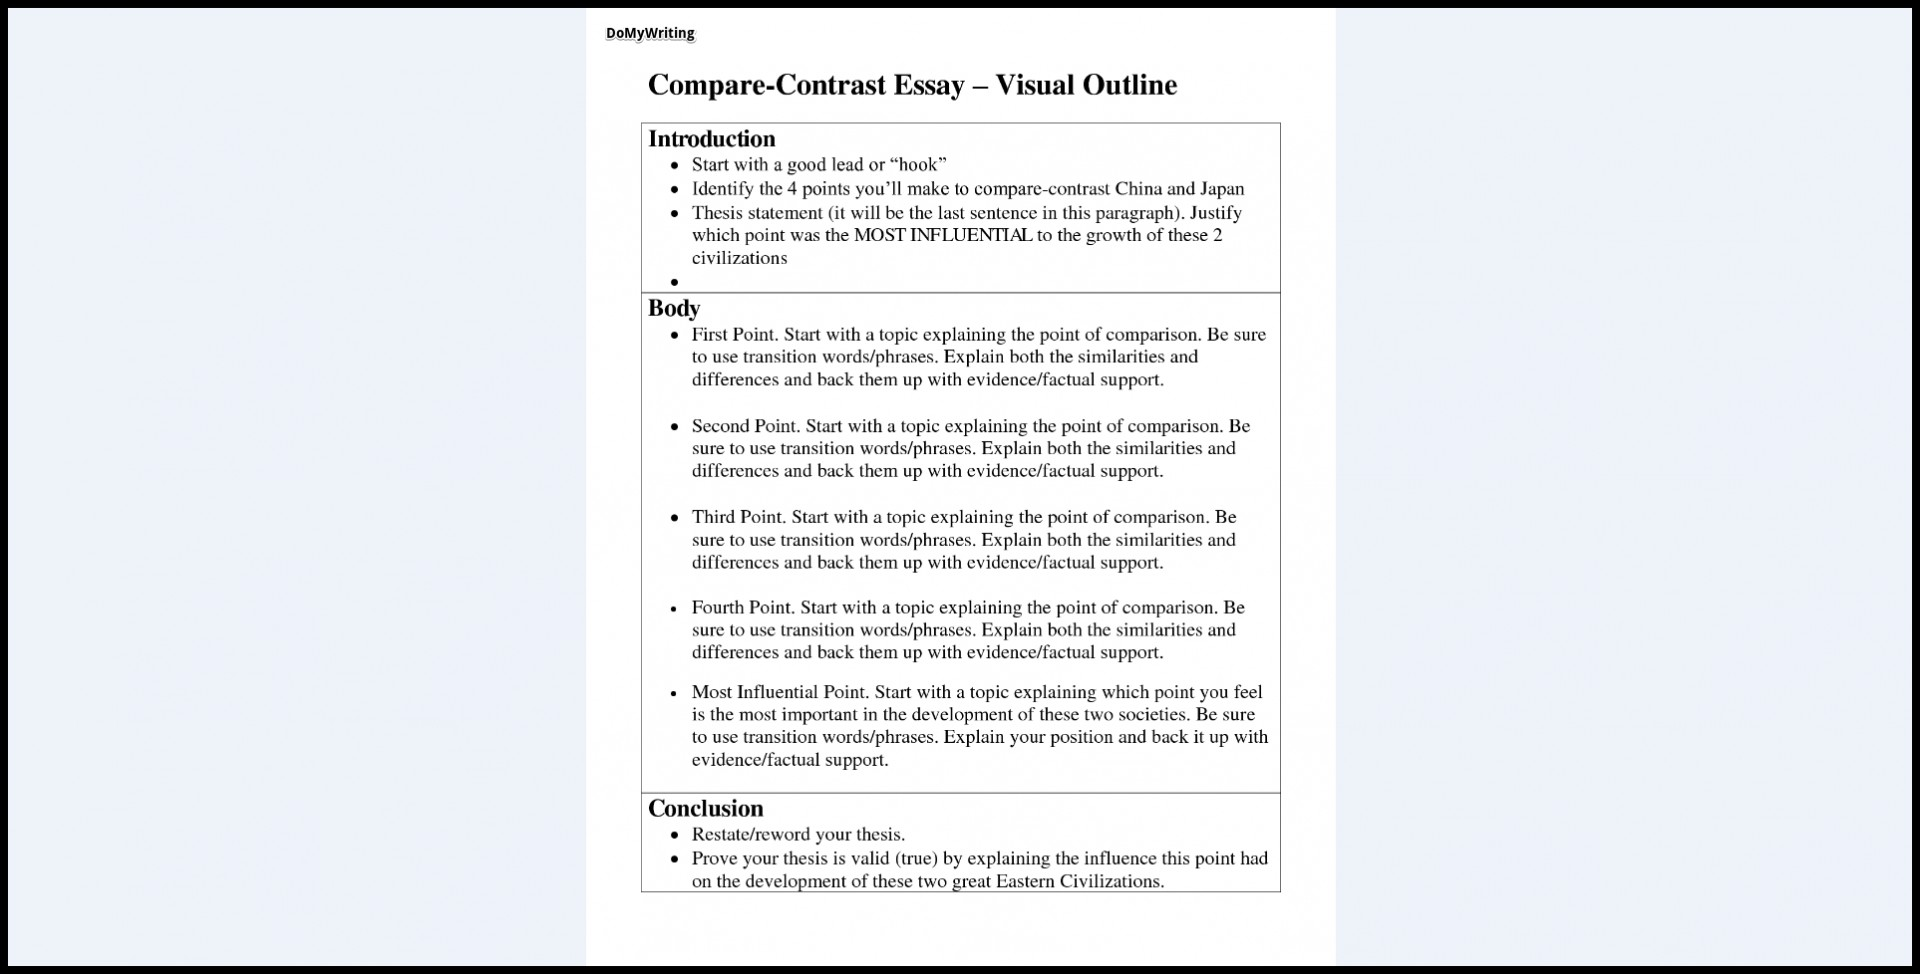 005 Comparend Contrast Essay Outline Example How To Do Outstanding A Compare And Start Write Mla Format Middle School 1920